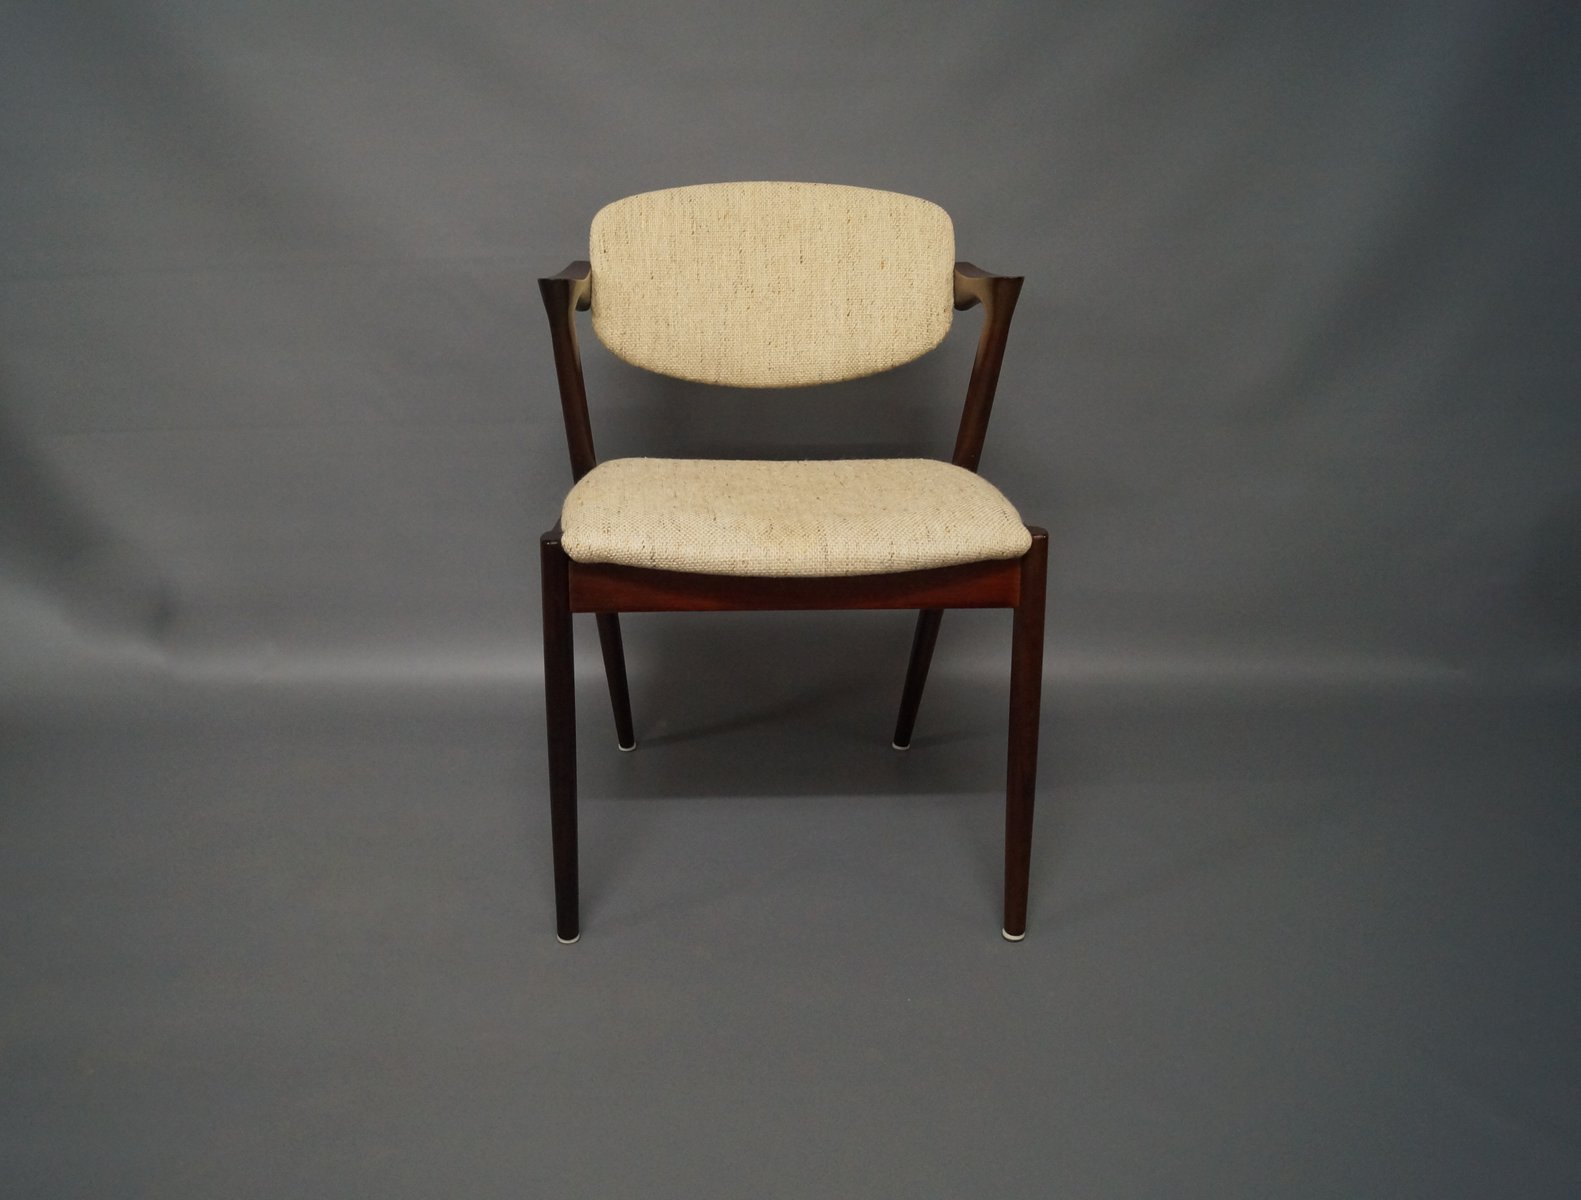 Model 42 Rosewood Dining Chairs By Kai Kristiansen 1960s Set Of 6 For Sale At Pamono